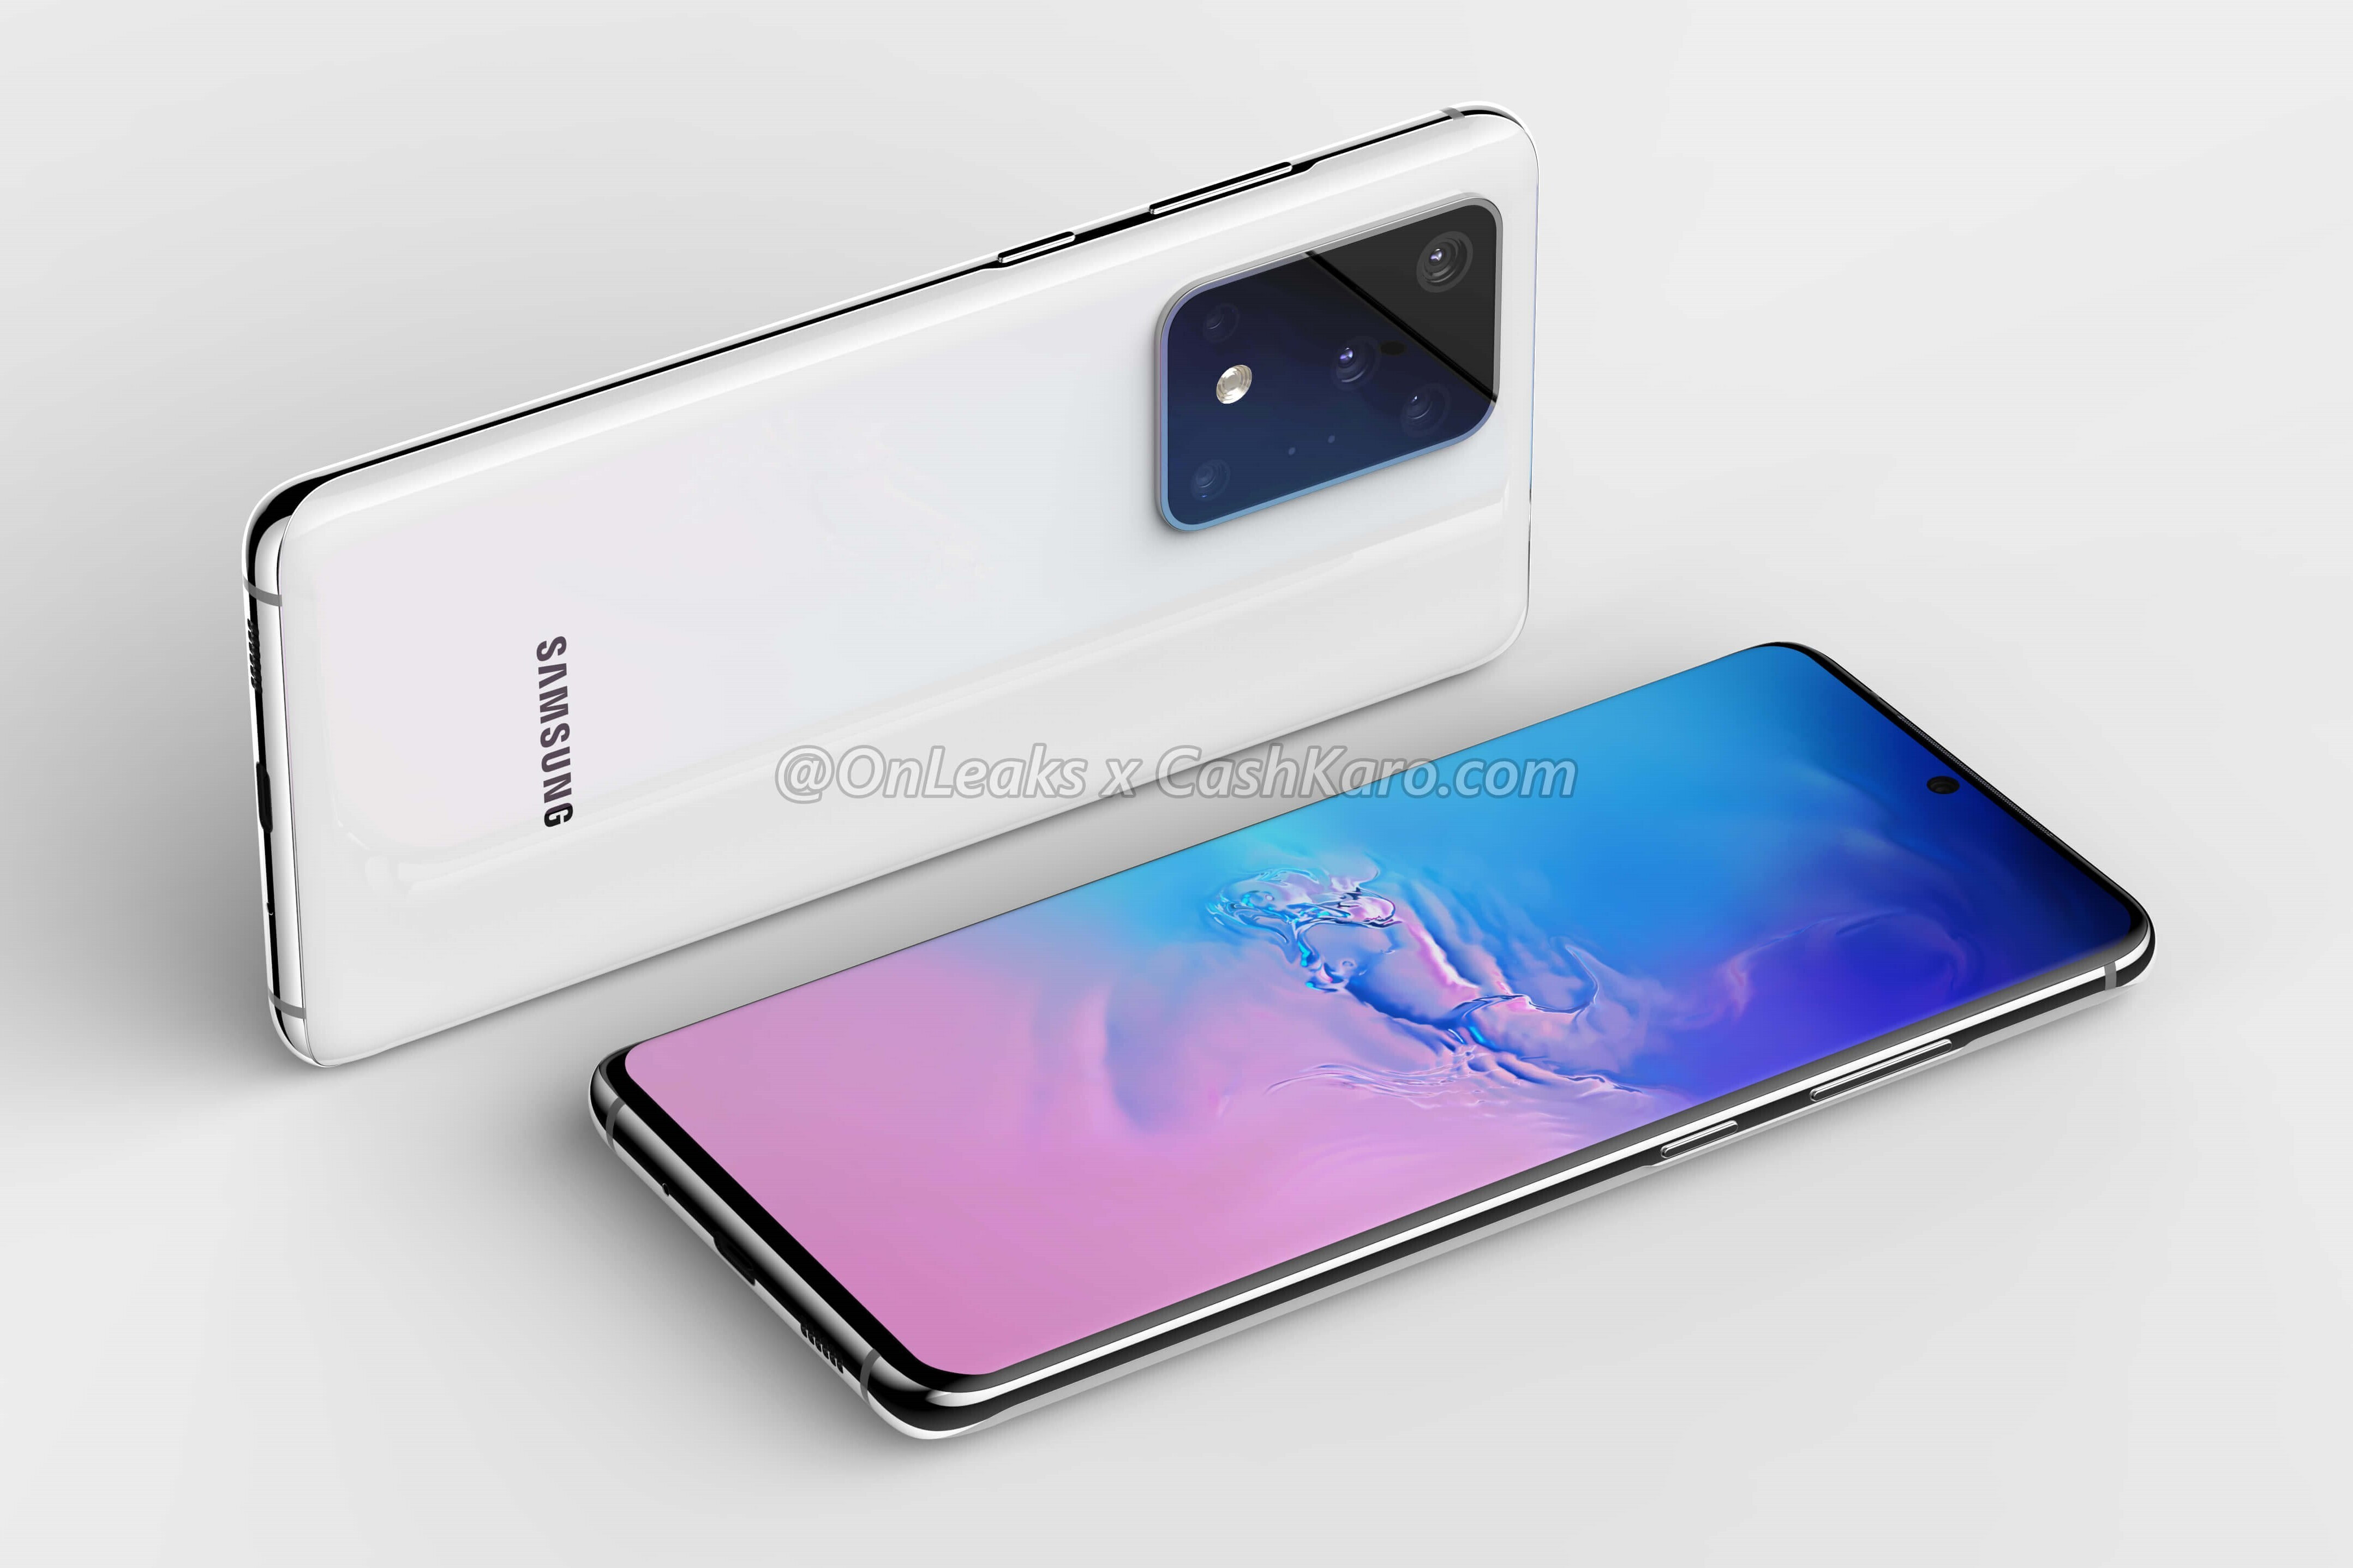 First camera leaks looked like that - The Samsung Galaxy S20 Ultra: price, release, specs, and features of the upcoming ultra phone